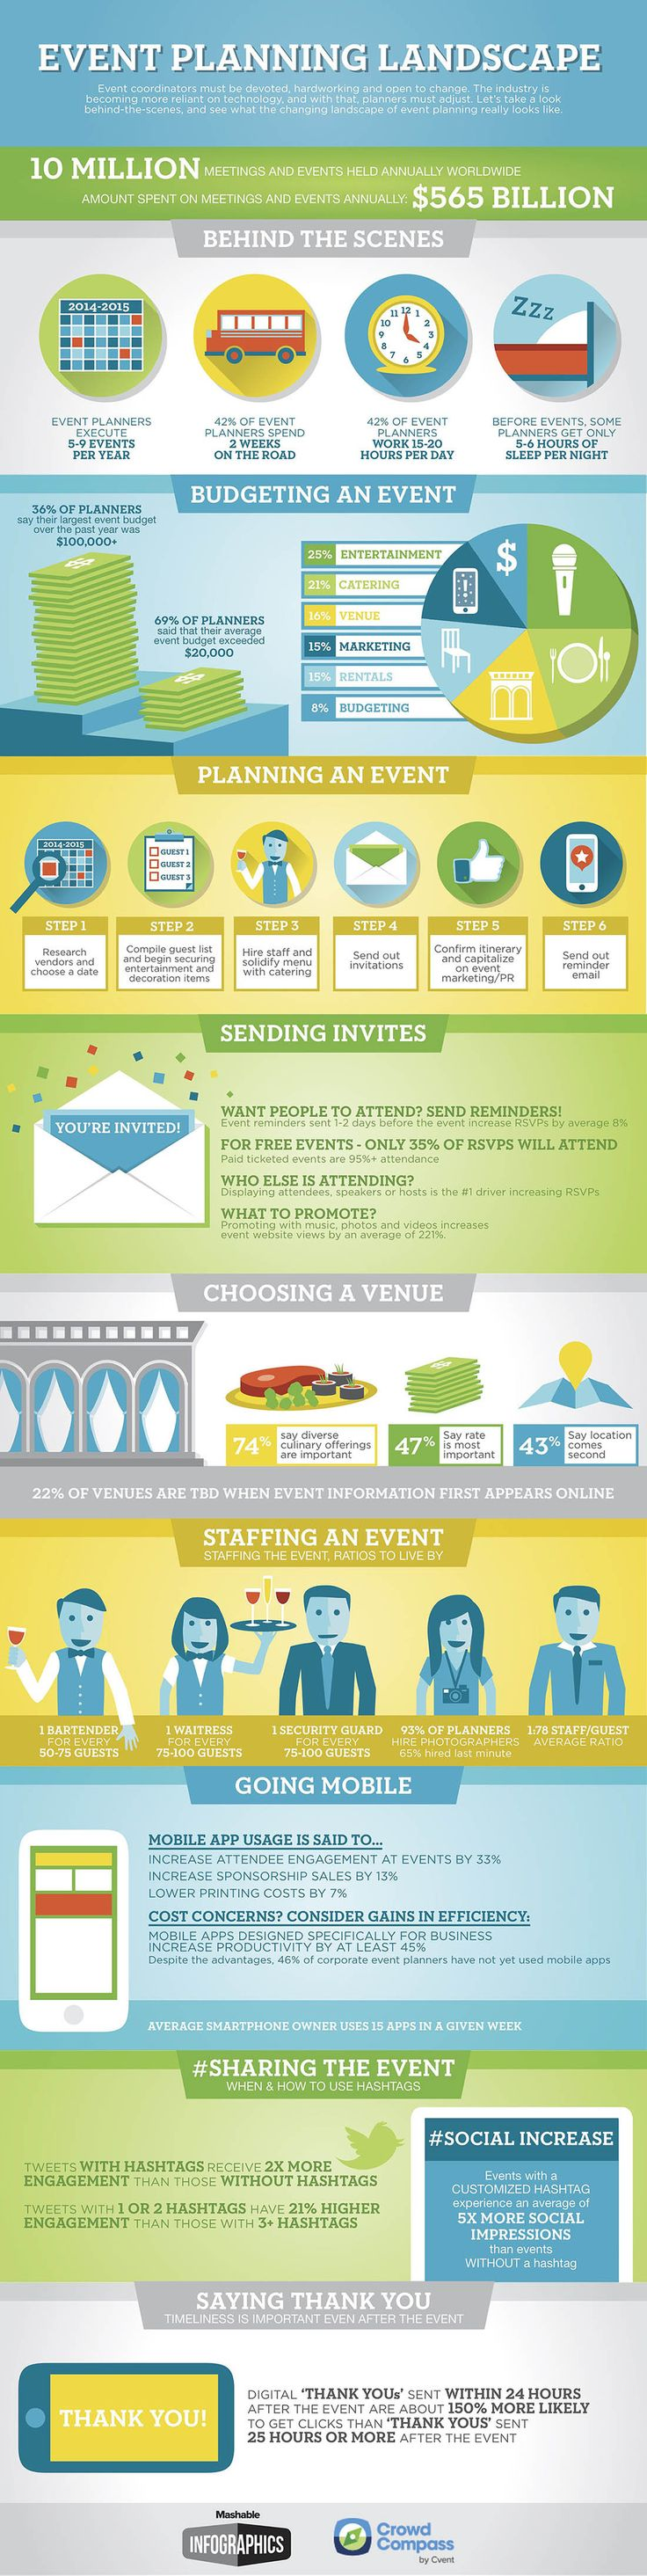 An infographic detailing a day in the life of an event planner. Event Planning and Management.